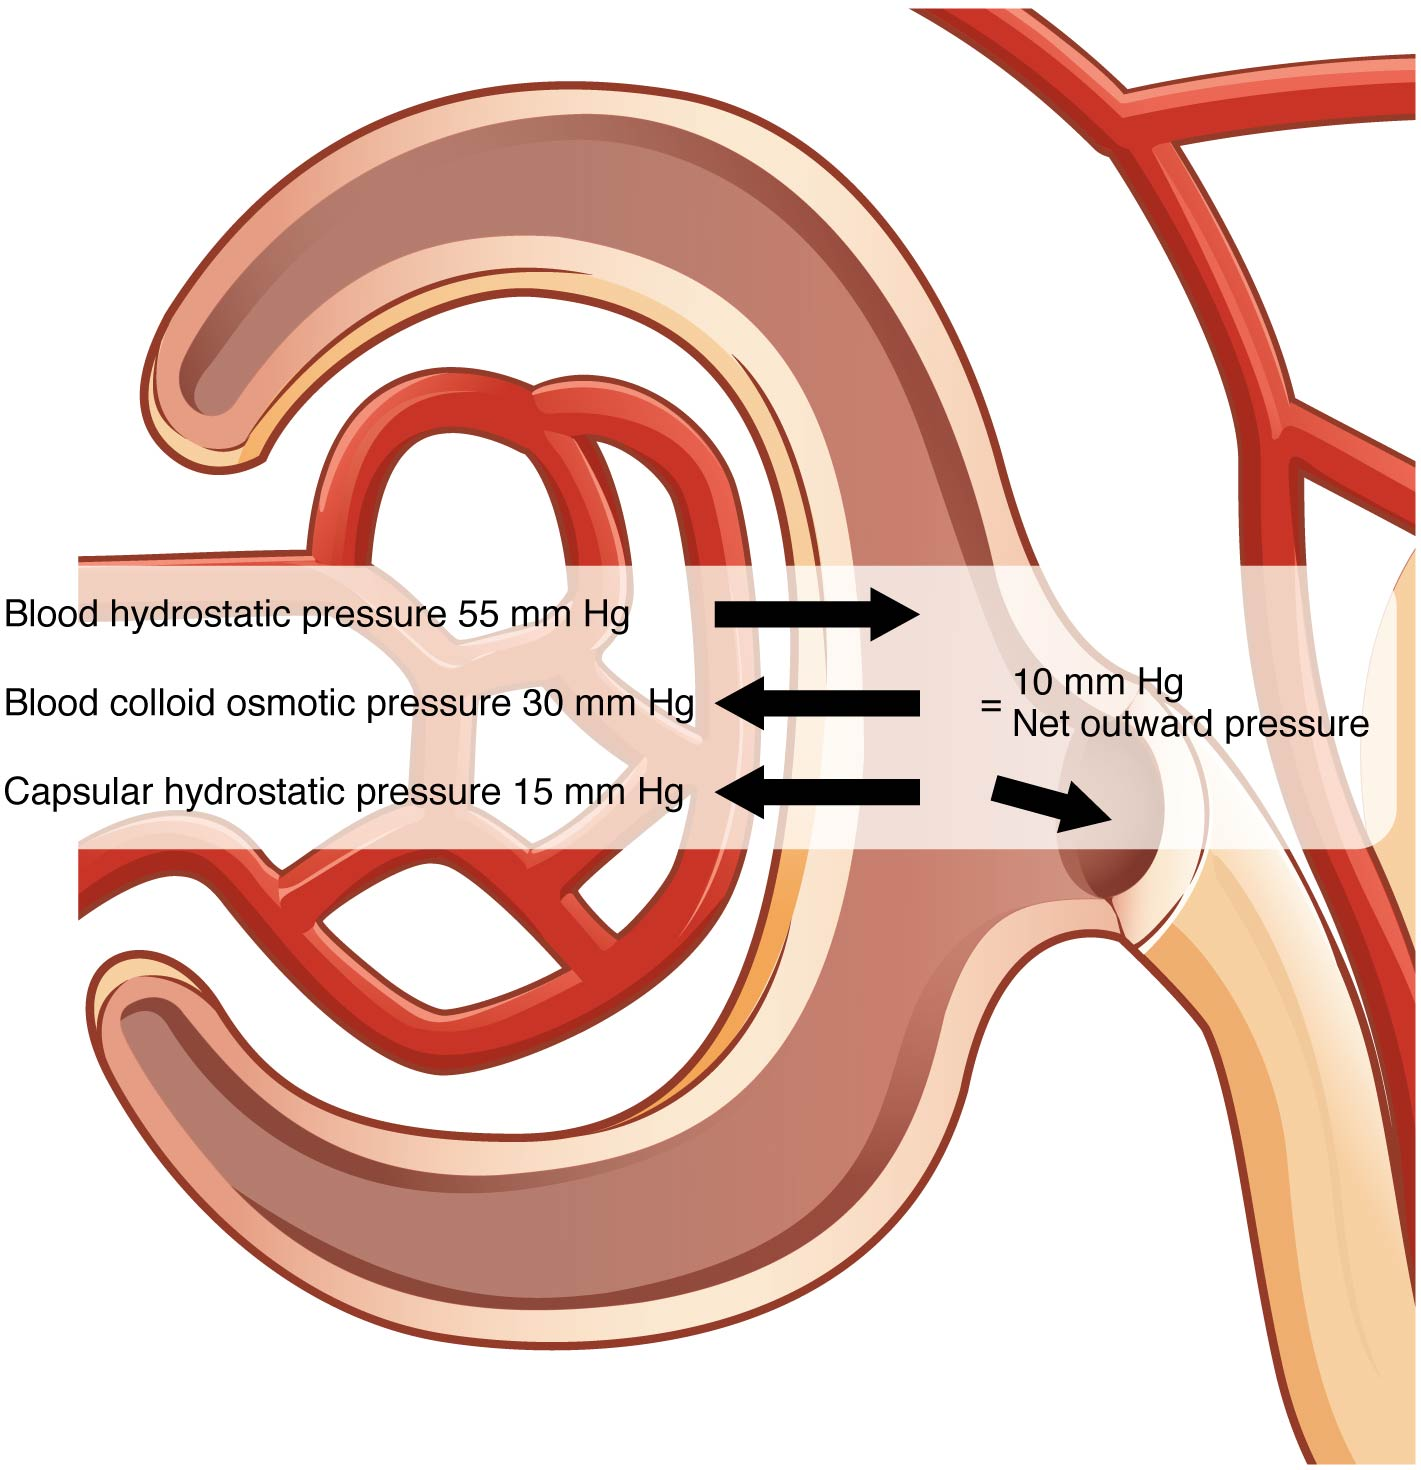 hight resolution of this figure shows the different pressures acting across the glomerulus